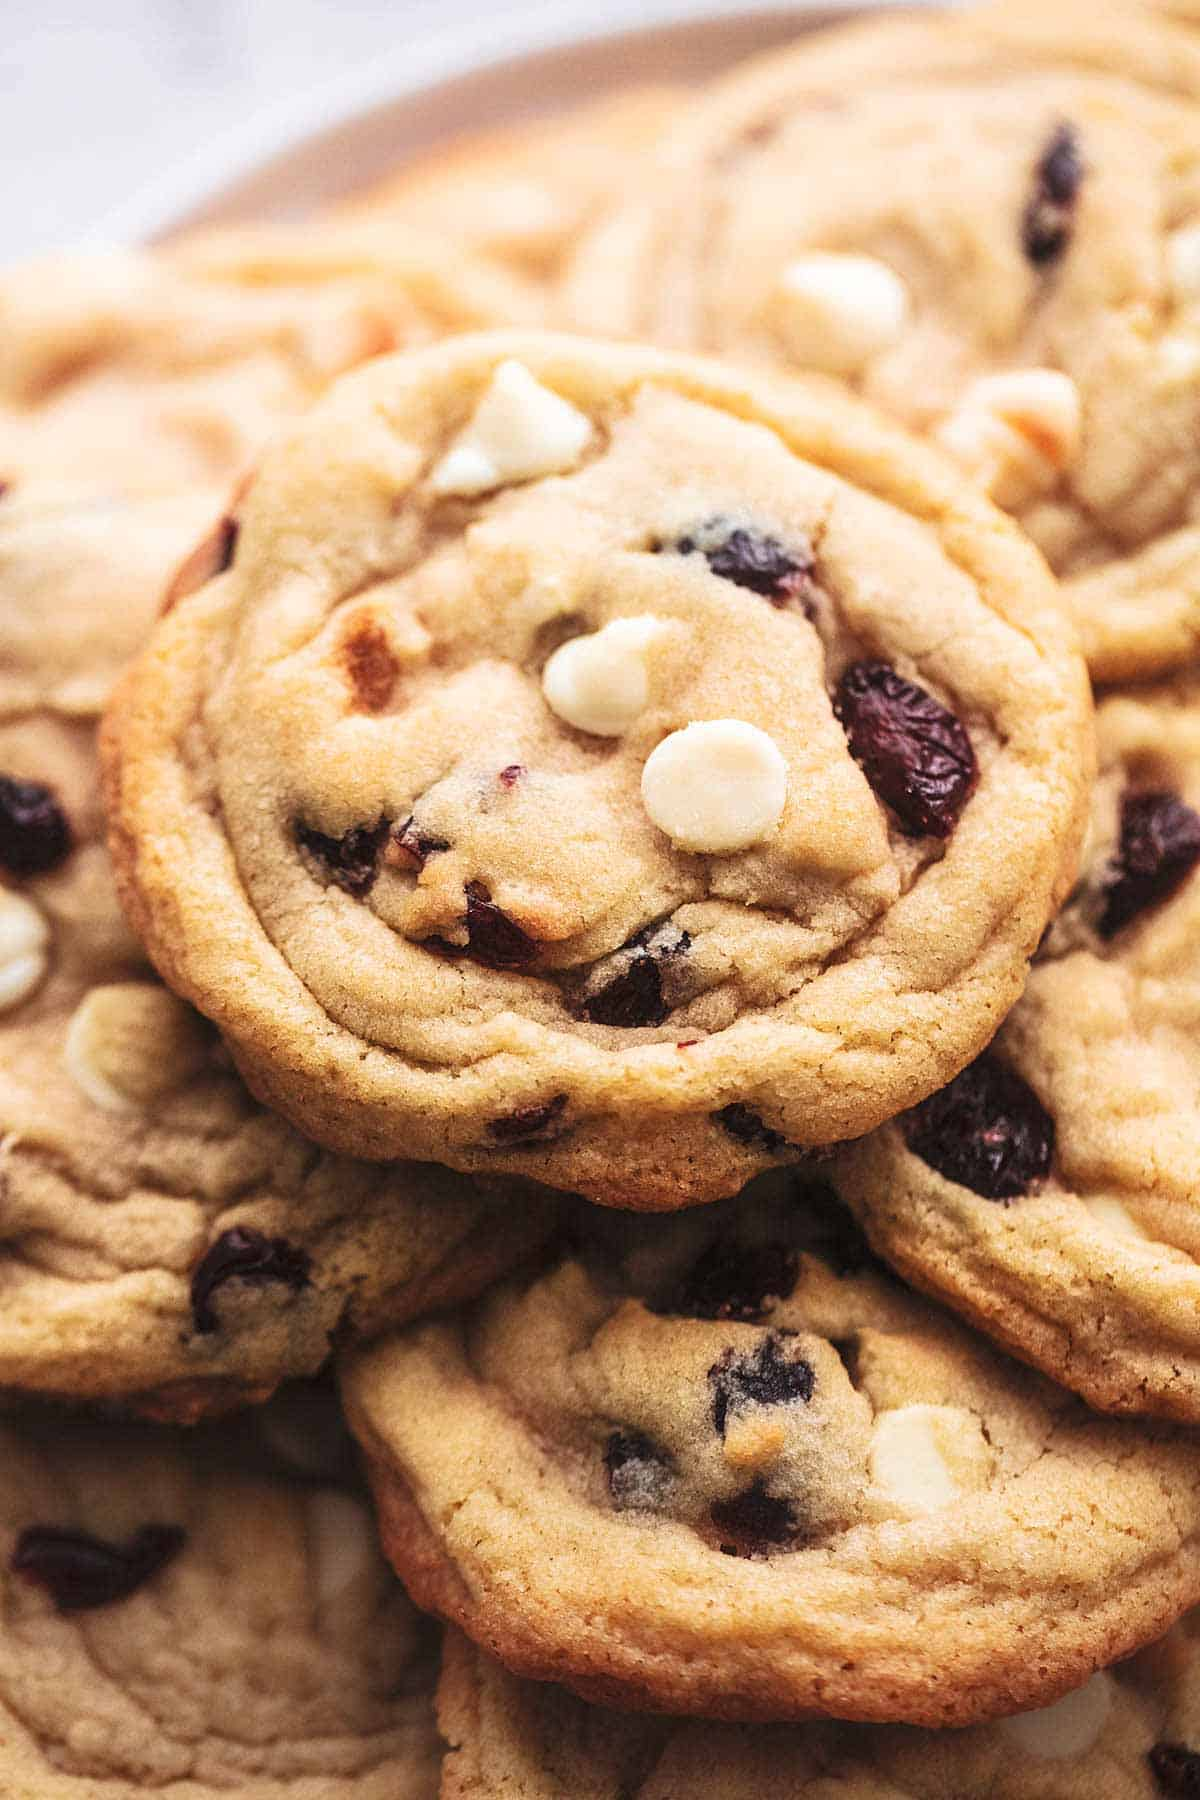 up close pile of cookies with white chocolate chips and cranberry pieces